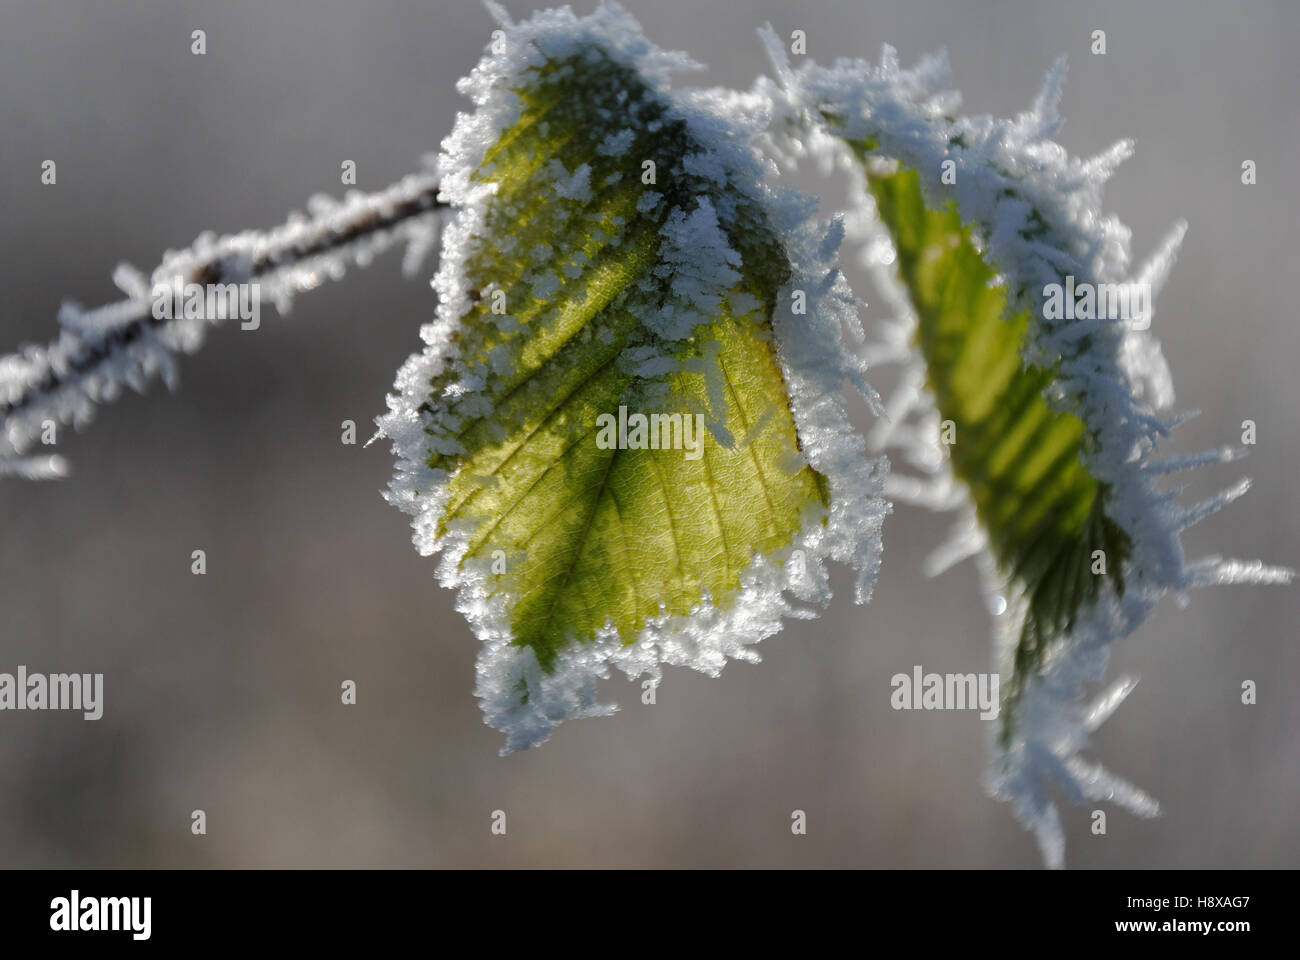 Grean leaves covered with ice cristals - Stock Image